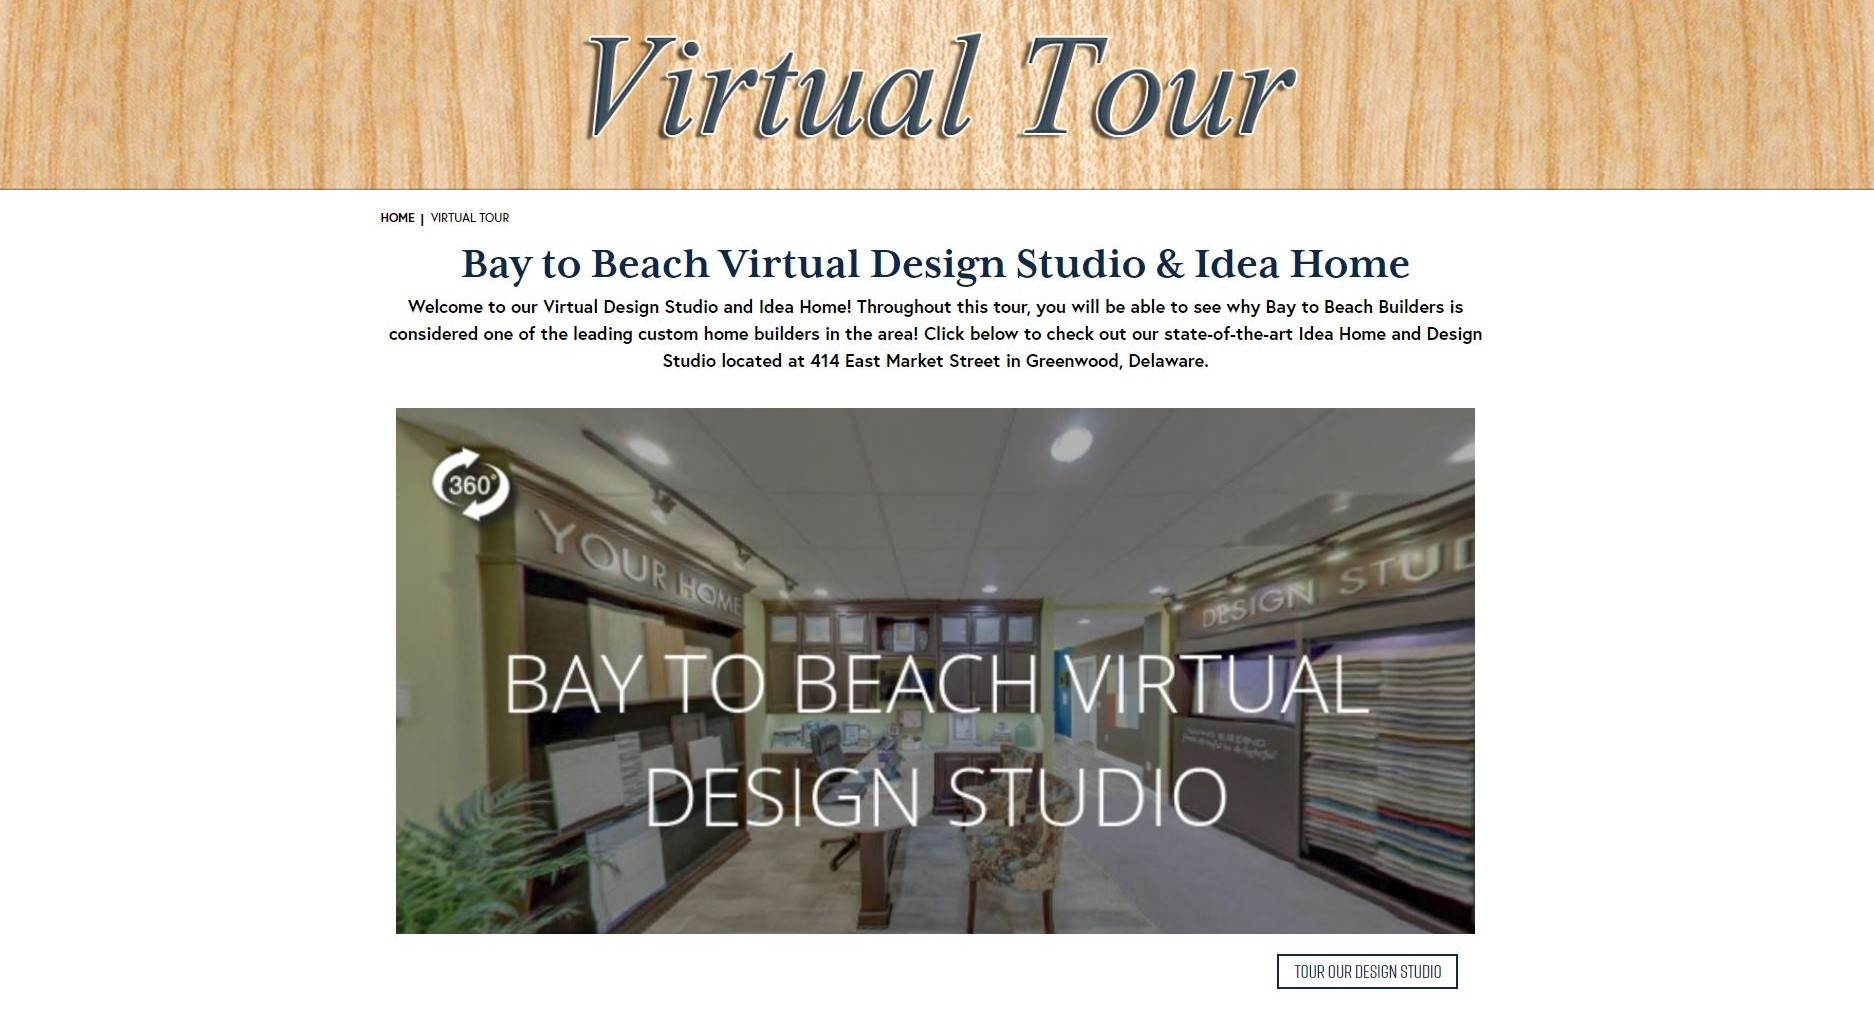 Bay to Beach Builders has leveraged their VR tours for both their experience center and online.